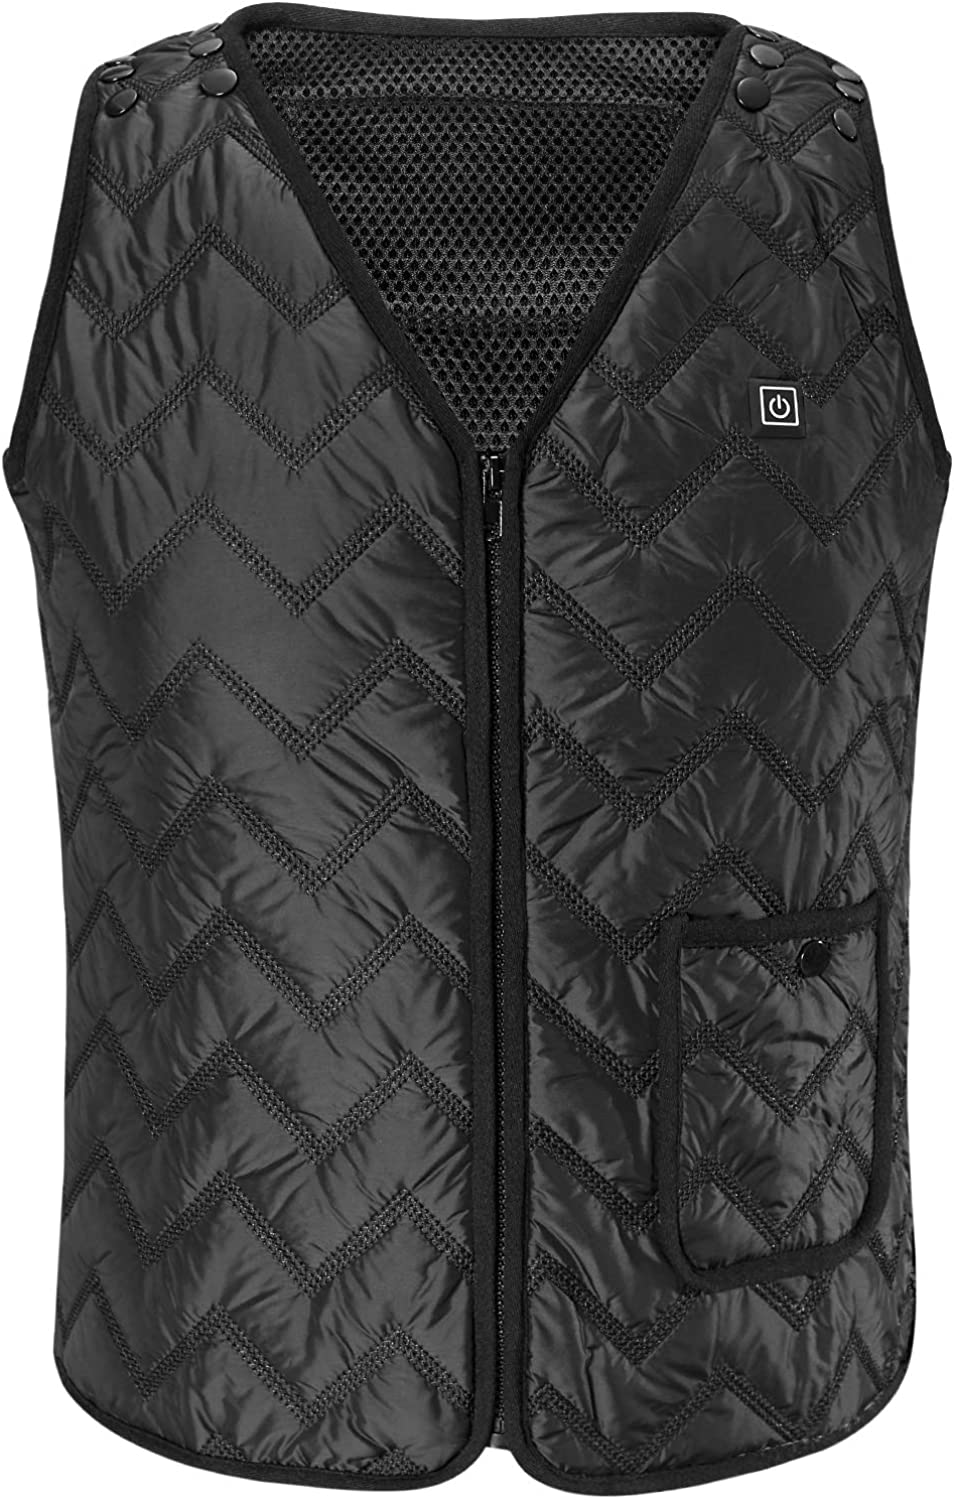 Size Adjustable Rrtizan Heated Vest for Mens and Womens Outdoor Winter Warm Vest Coats for Hunting USB Electric Heating Vests Camping 3 Temperature Levels Electrically Heated Jacket Washable